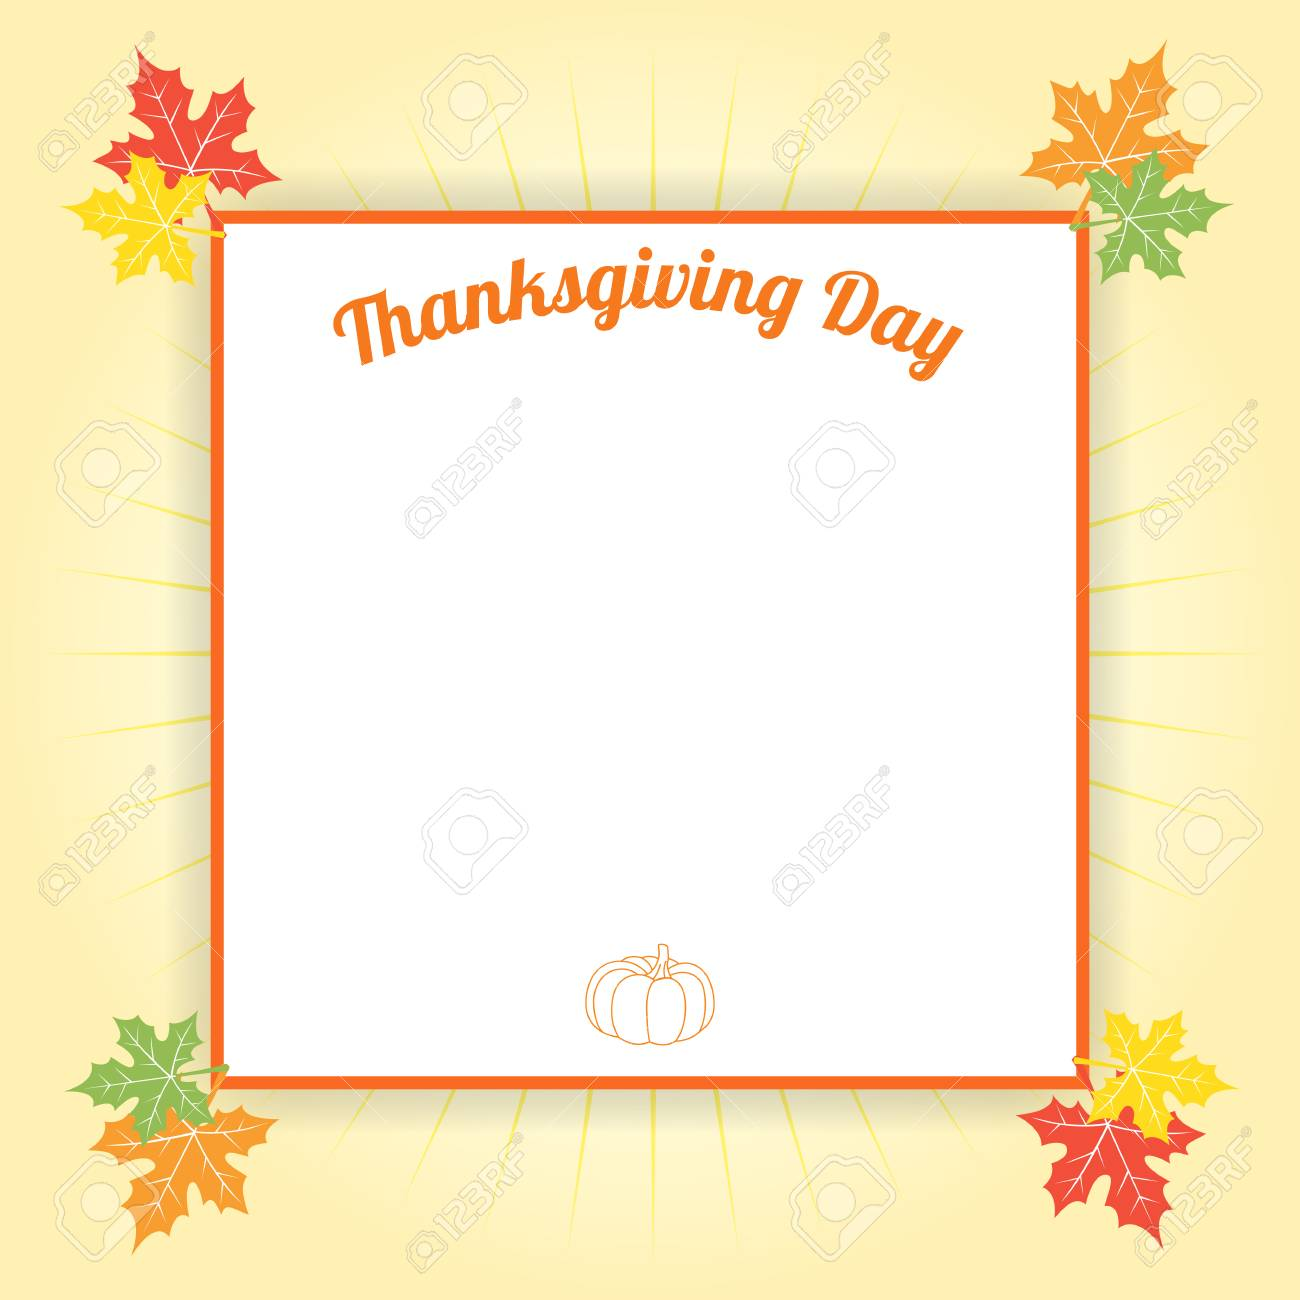 happy thanksgiving day celebration background and border template